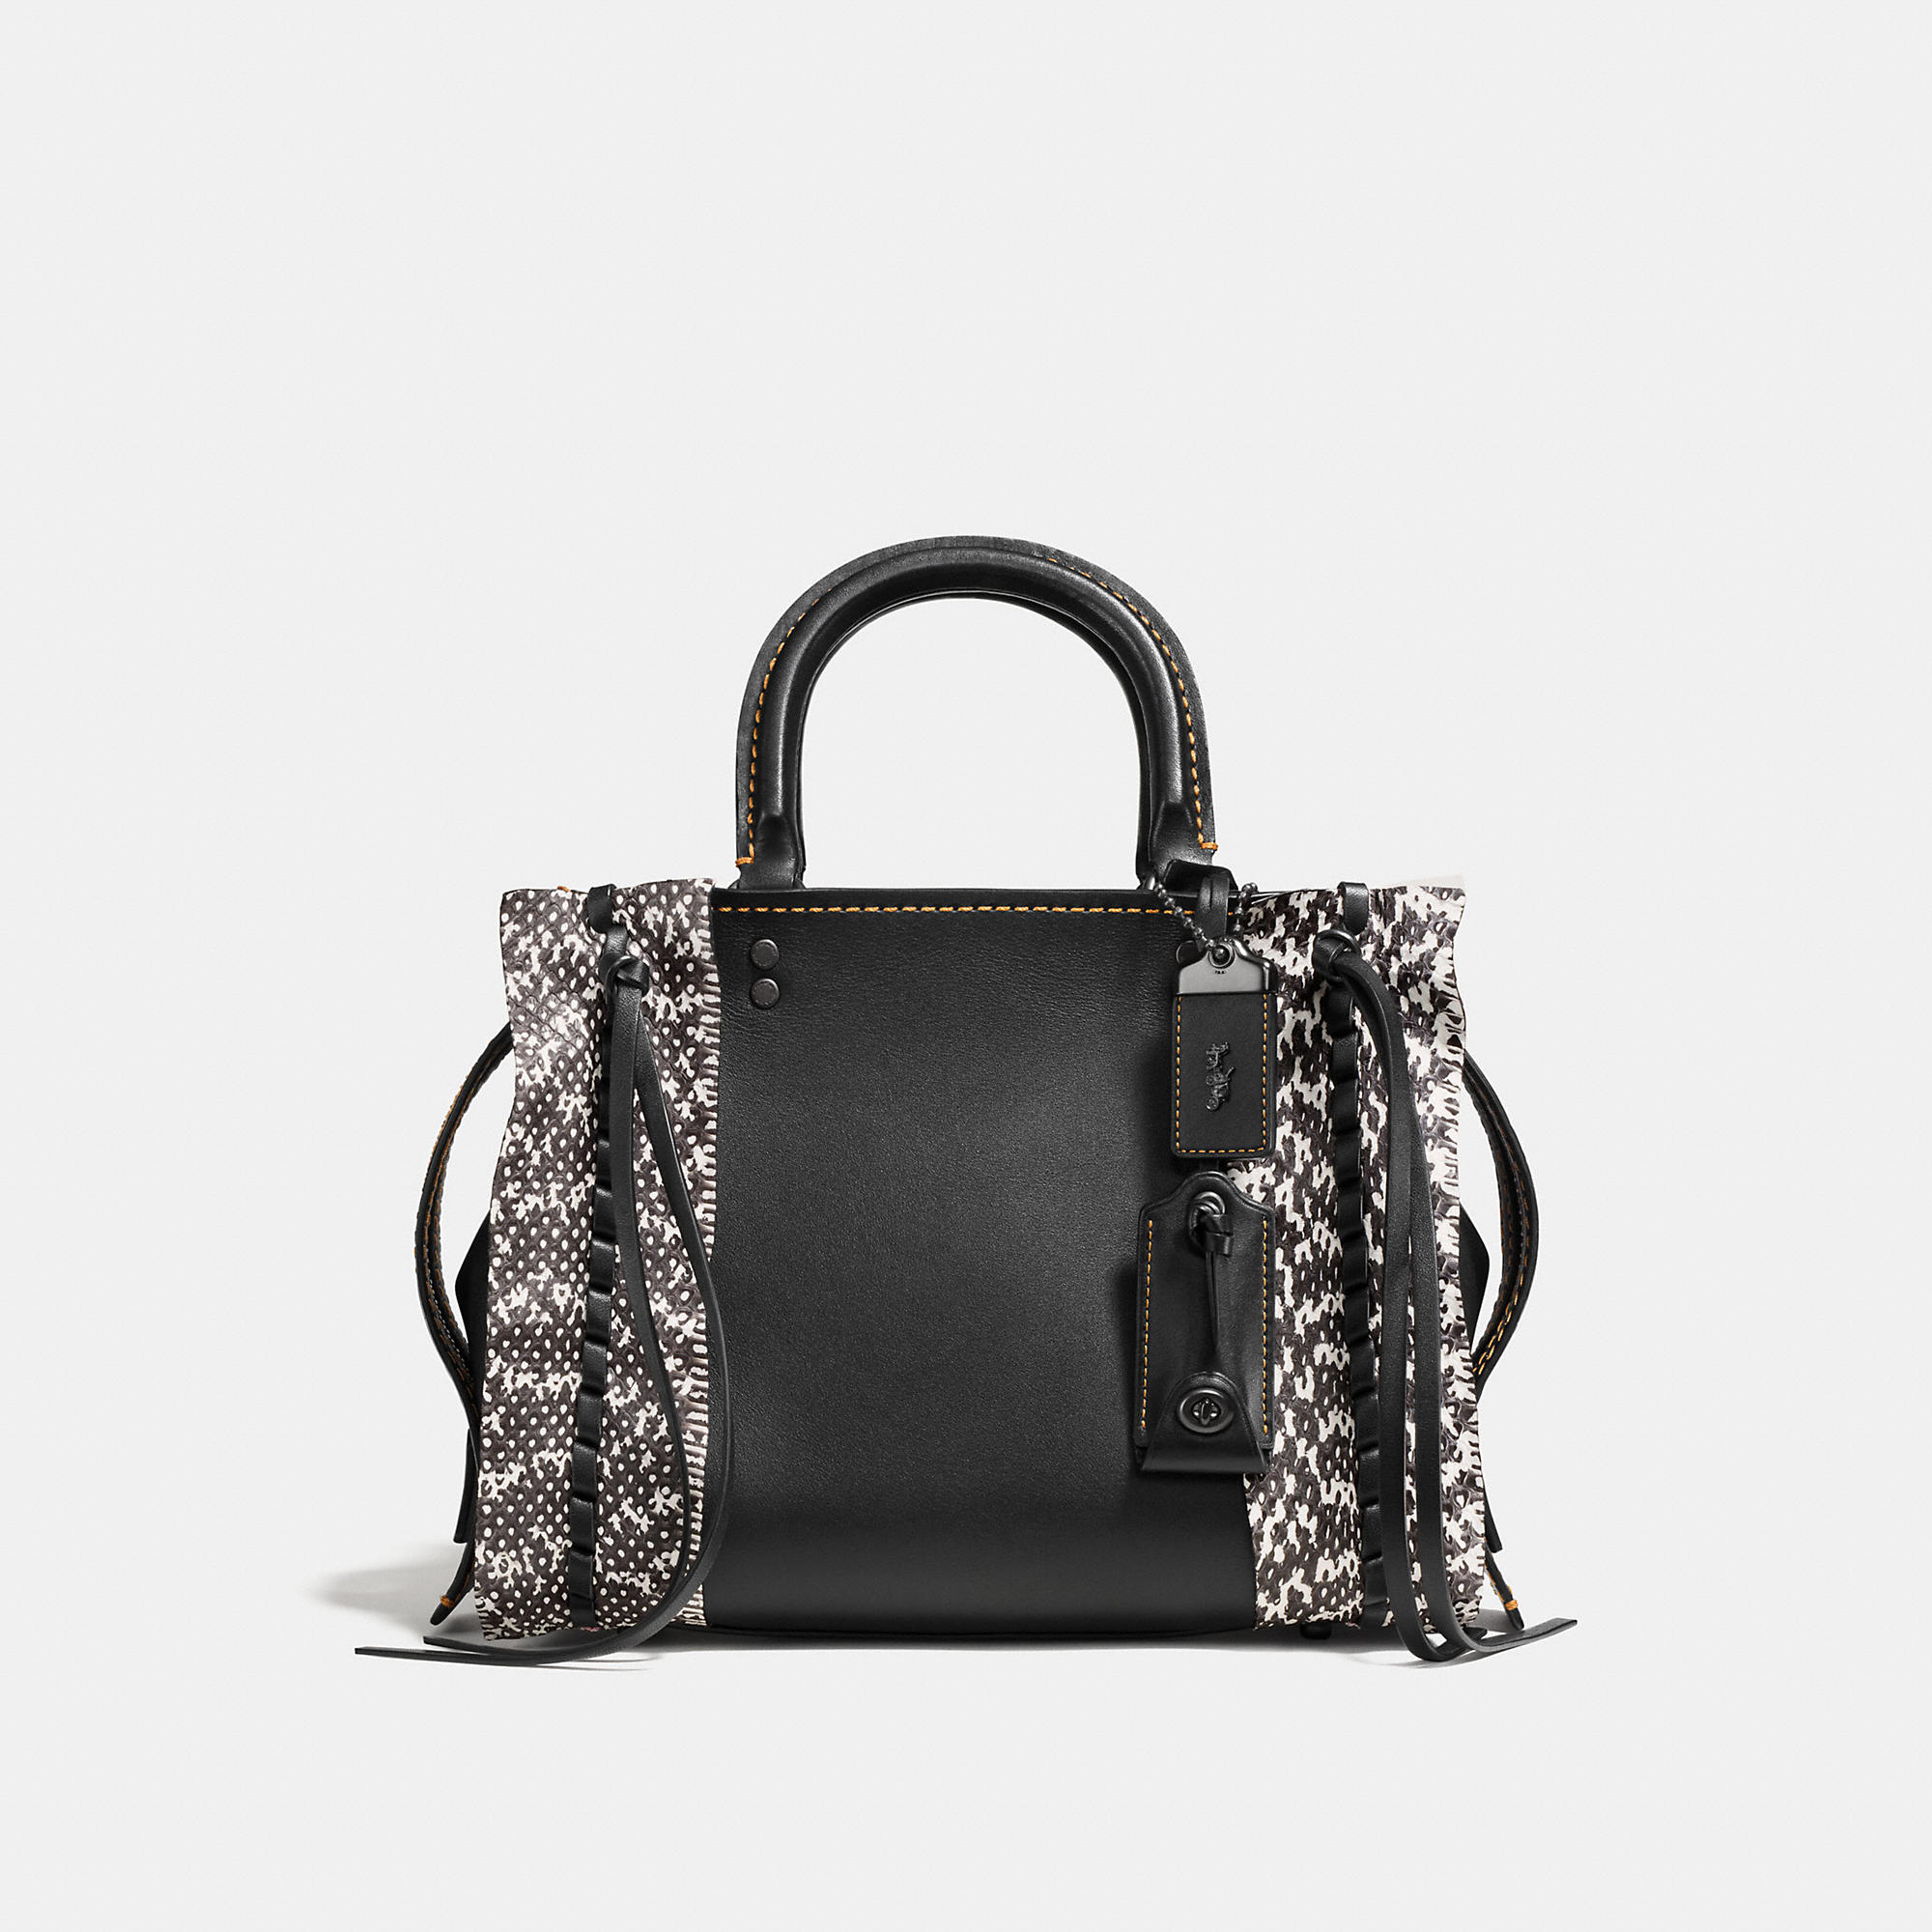 Coach Rogue 25 In Glovetanned Leather With Whipstitch Snake